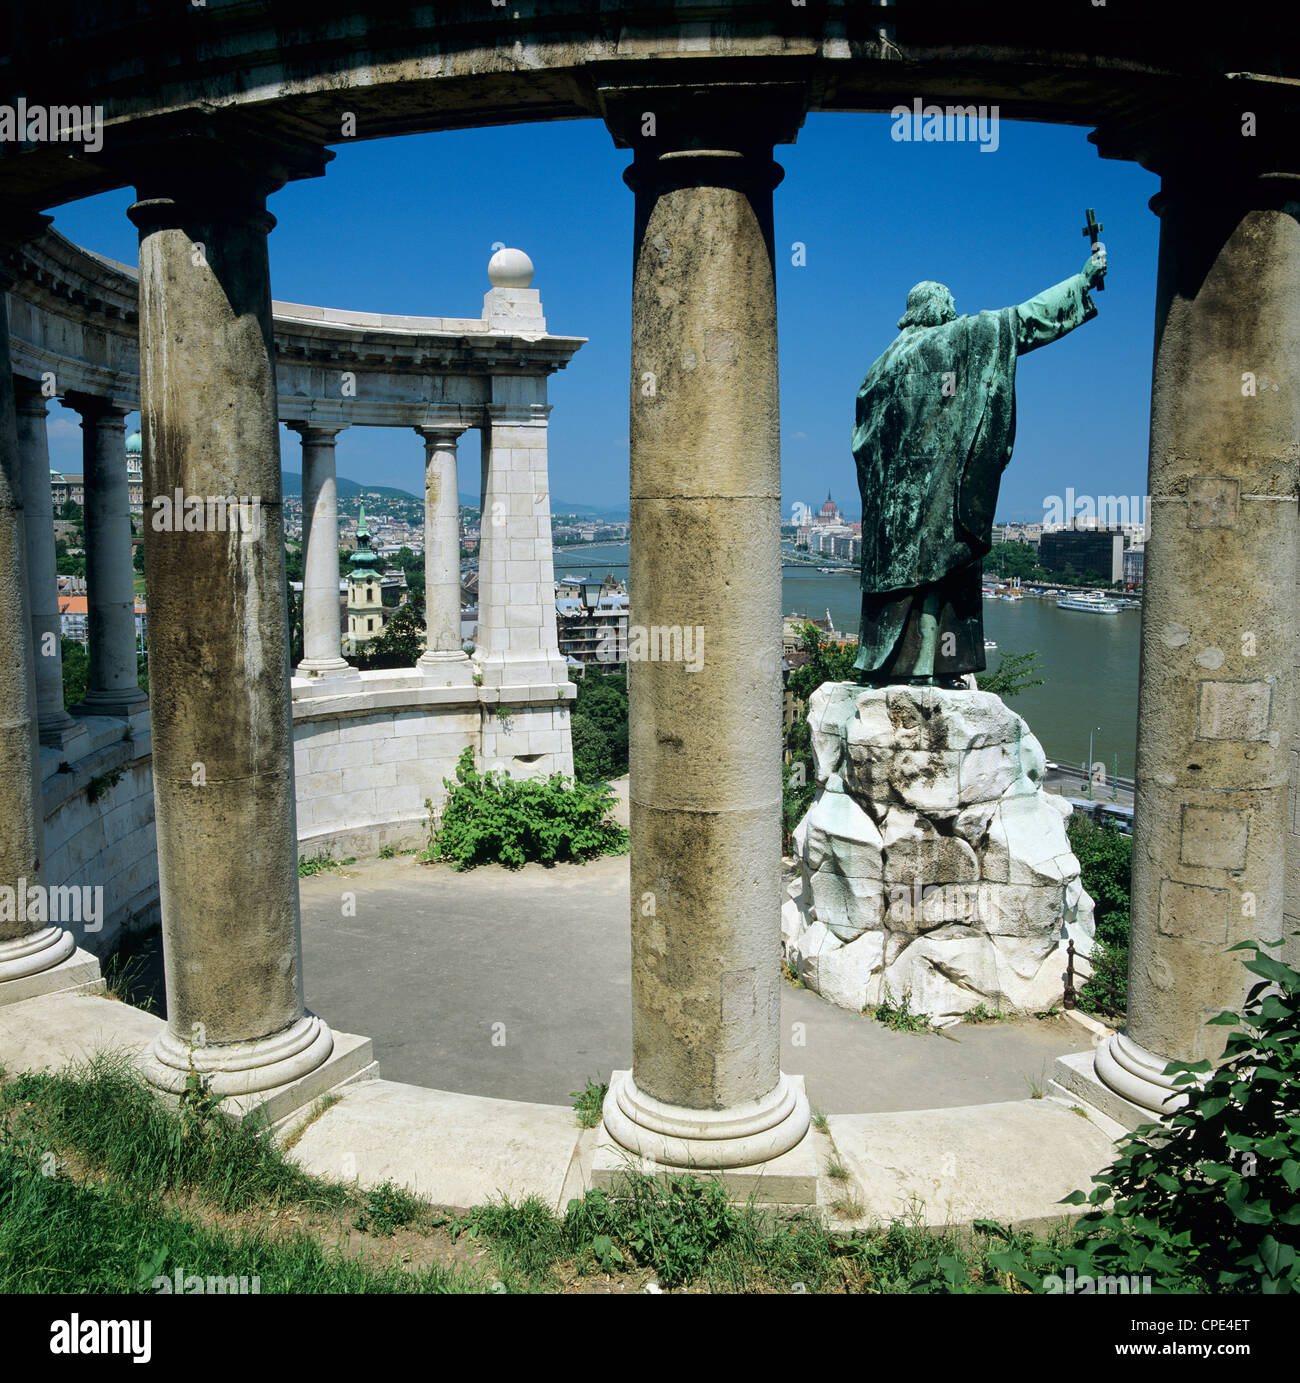 Gellert Monument with view over River Danube and city, Gellert Hill, Budapest, Hungary, Europe - Stock Image